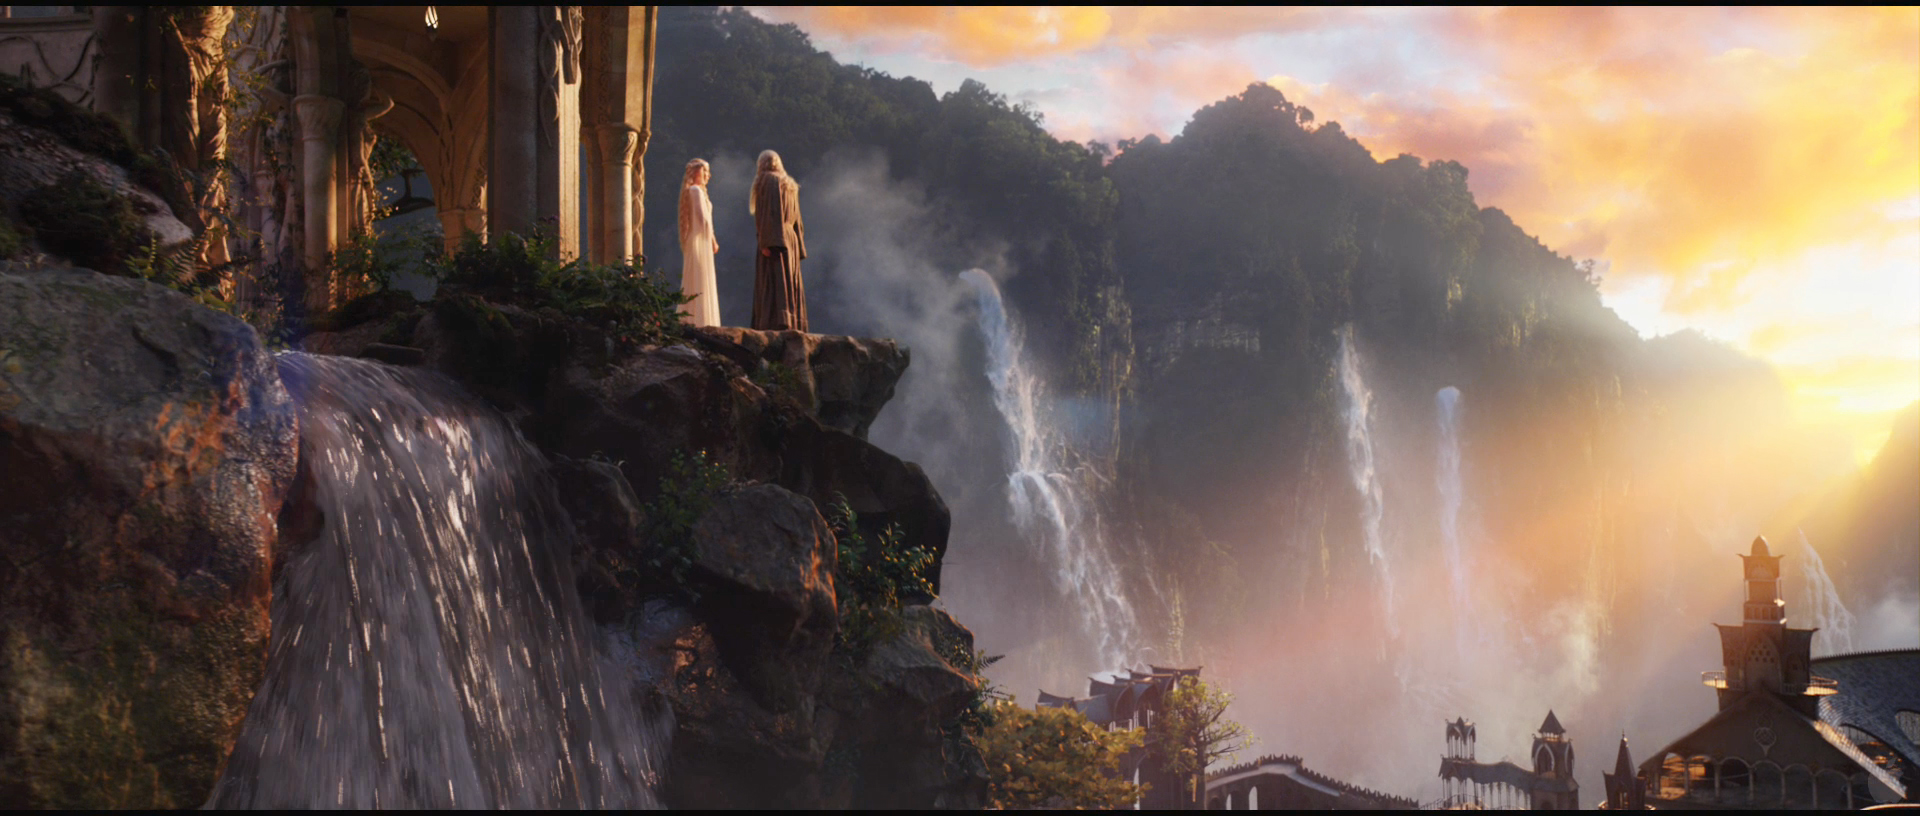 rivendell wallpaper-#23